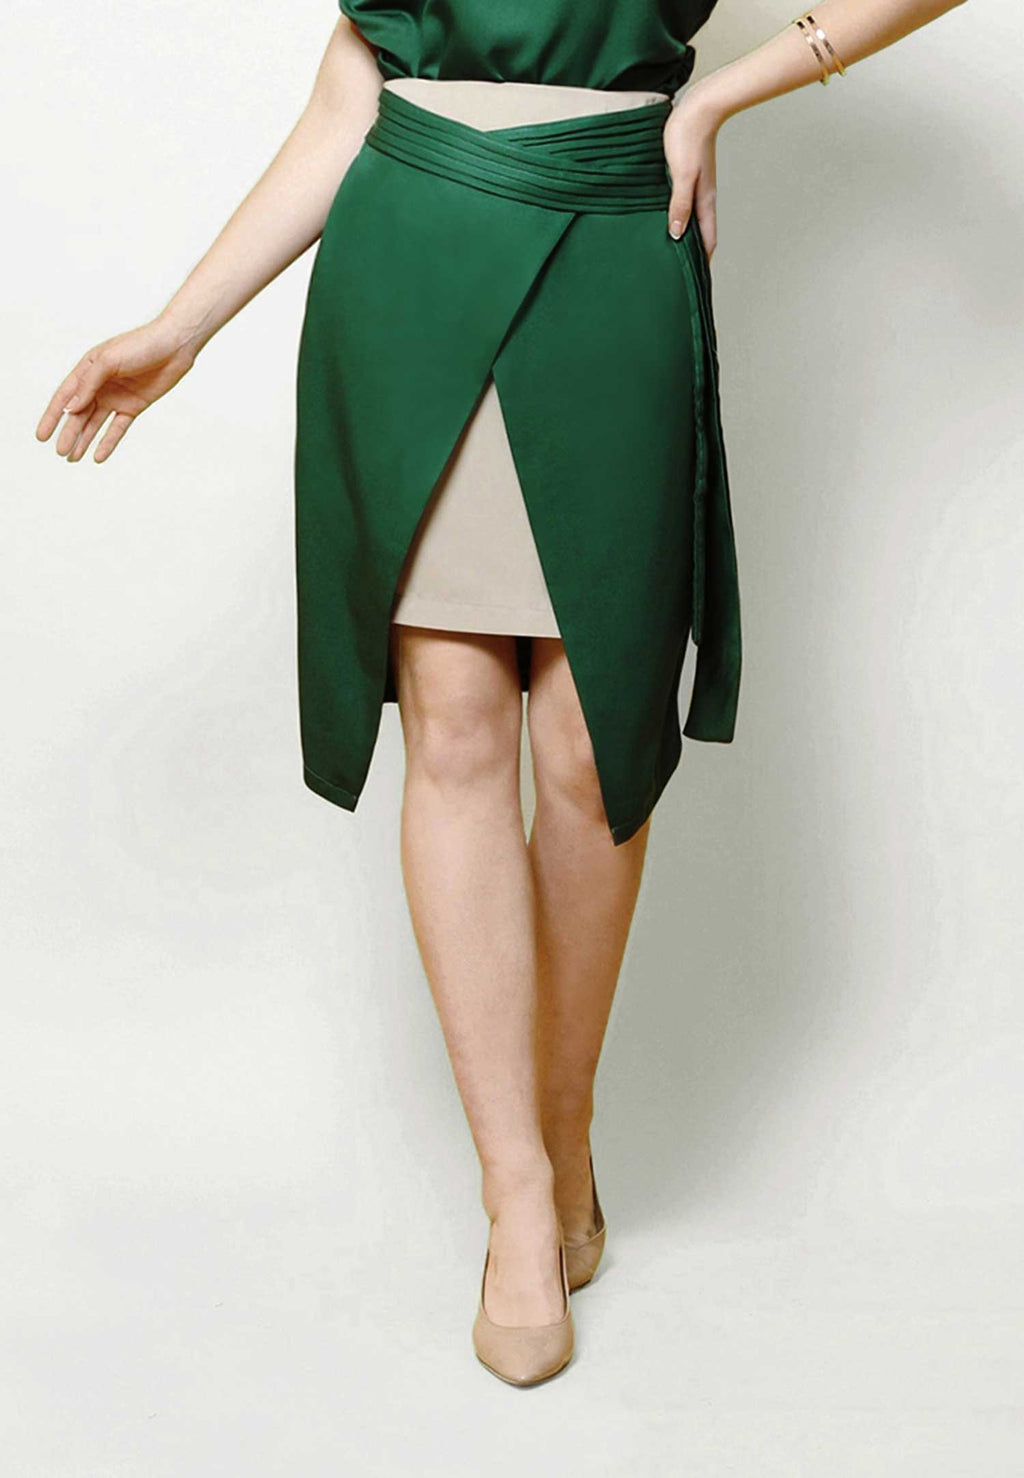 Berthe. Tulip Skirt - Green